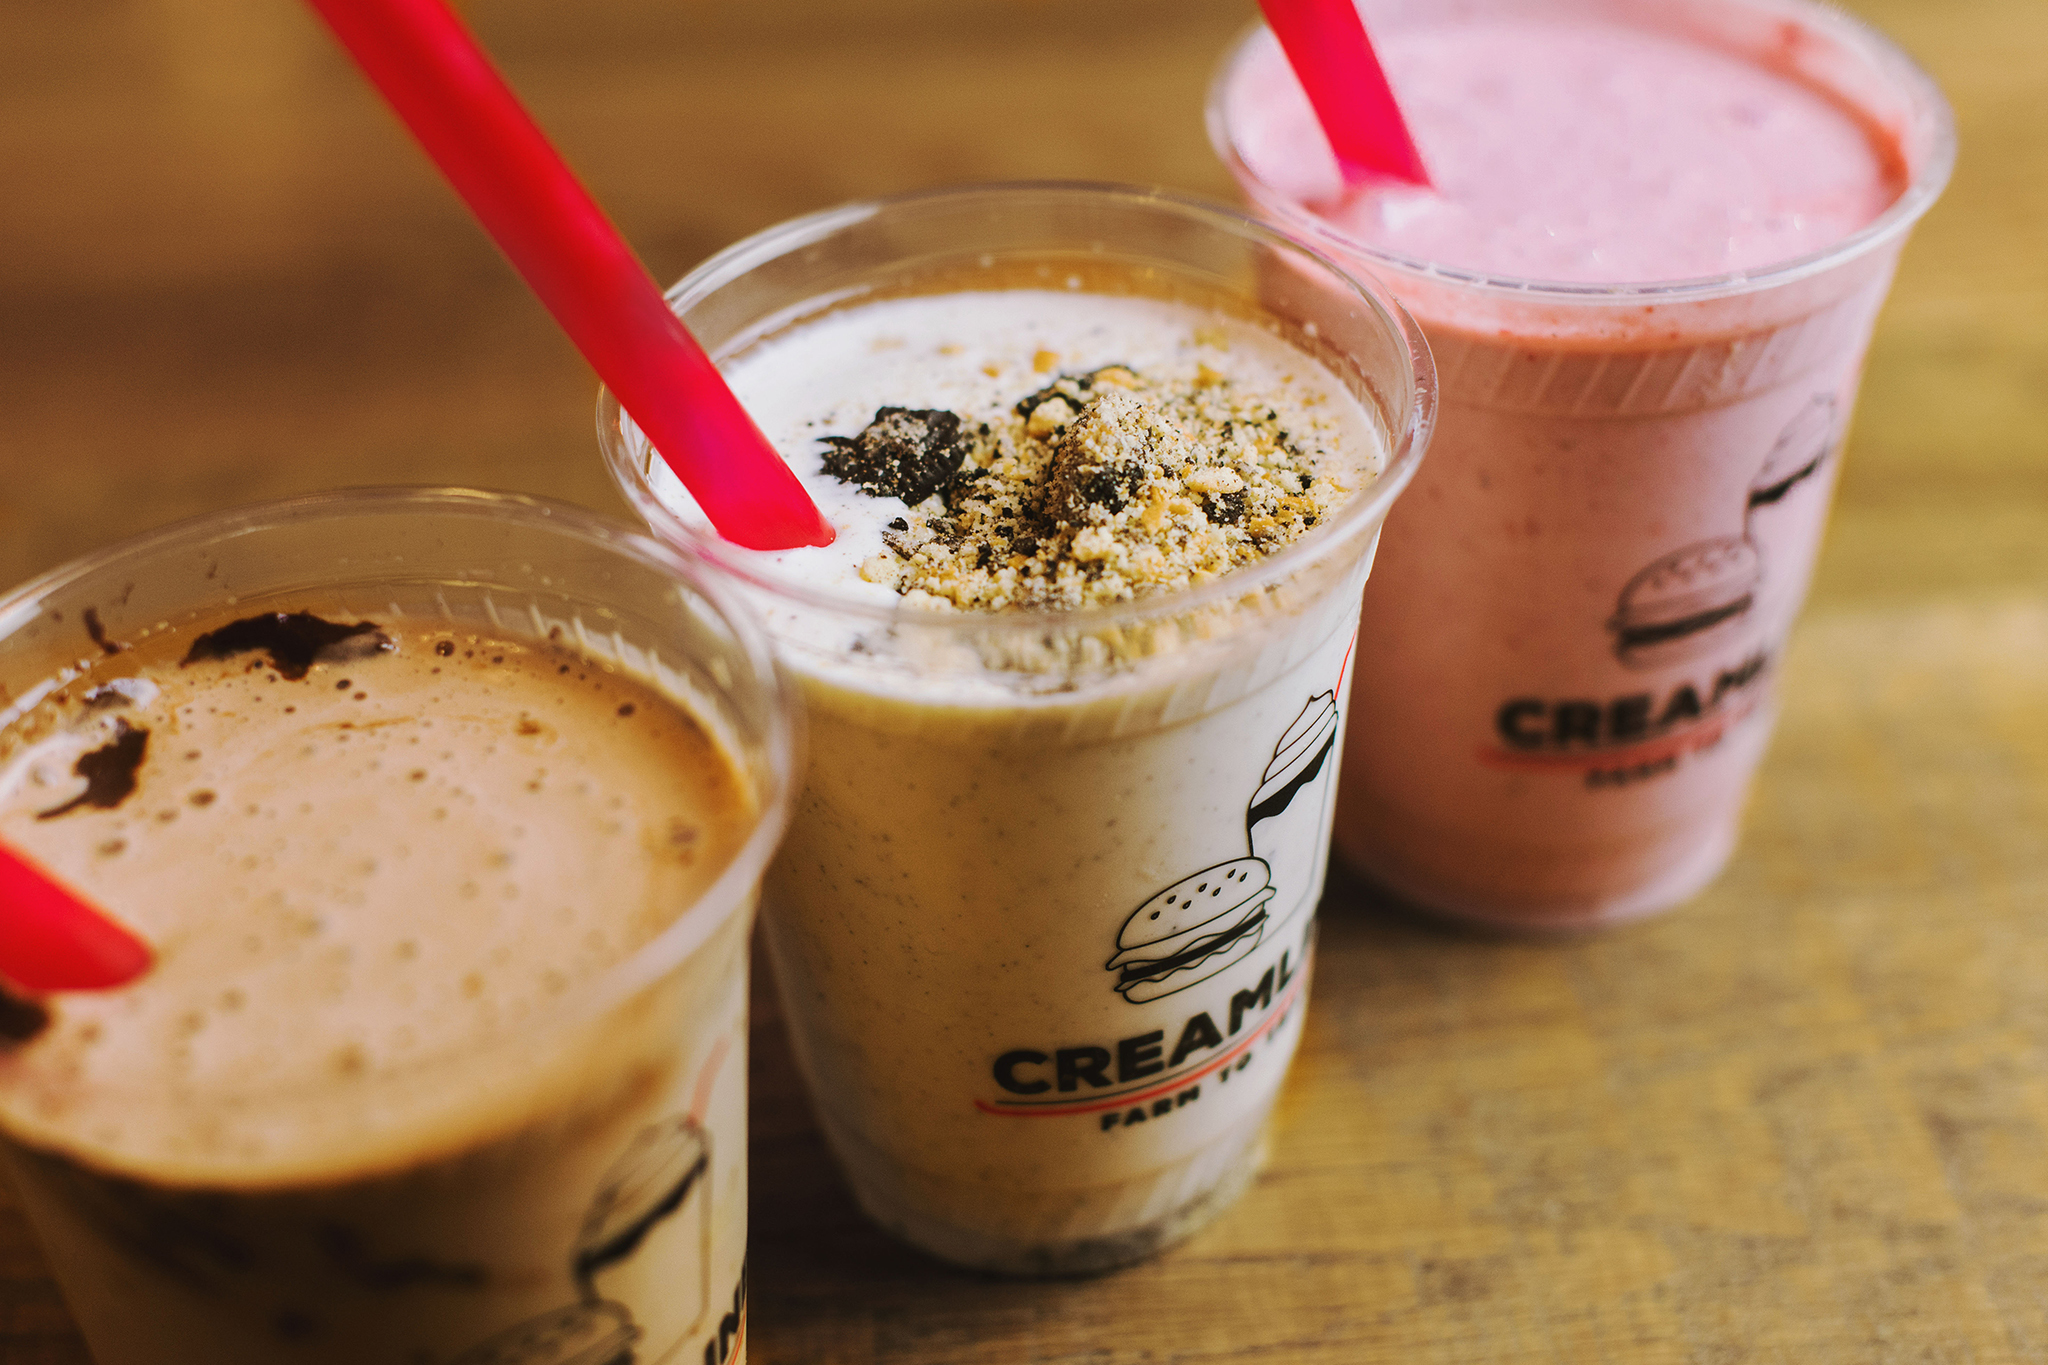 Check out the best boozy milkshakes in NYC